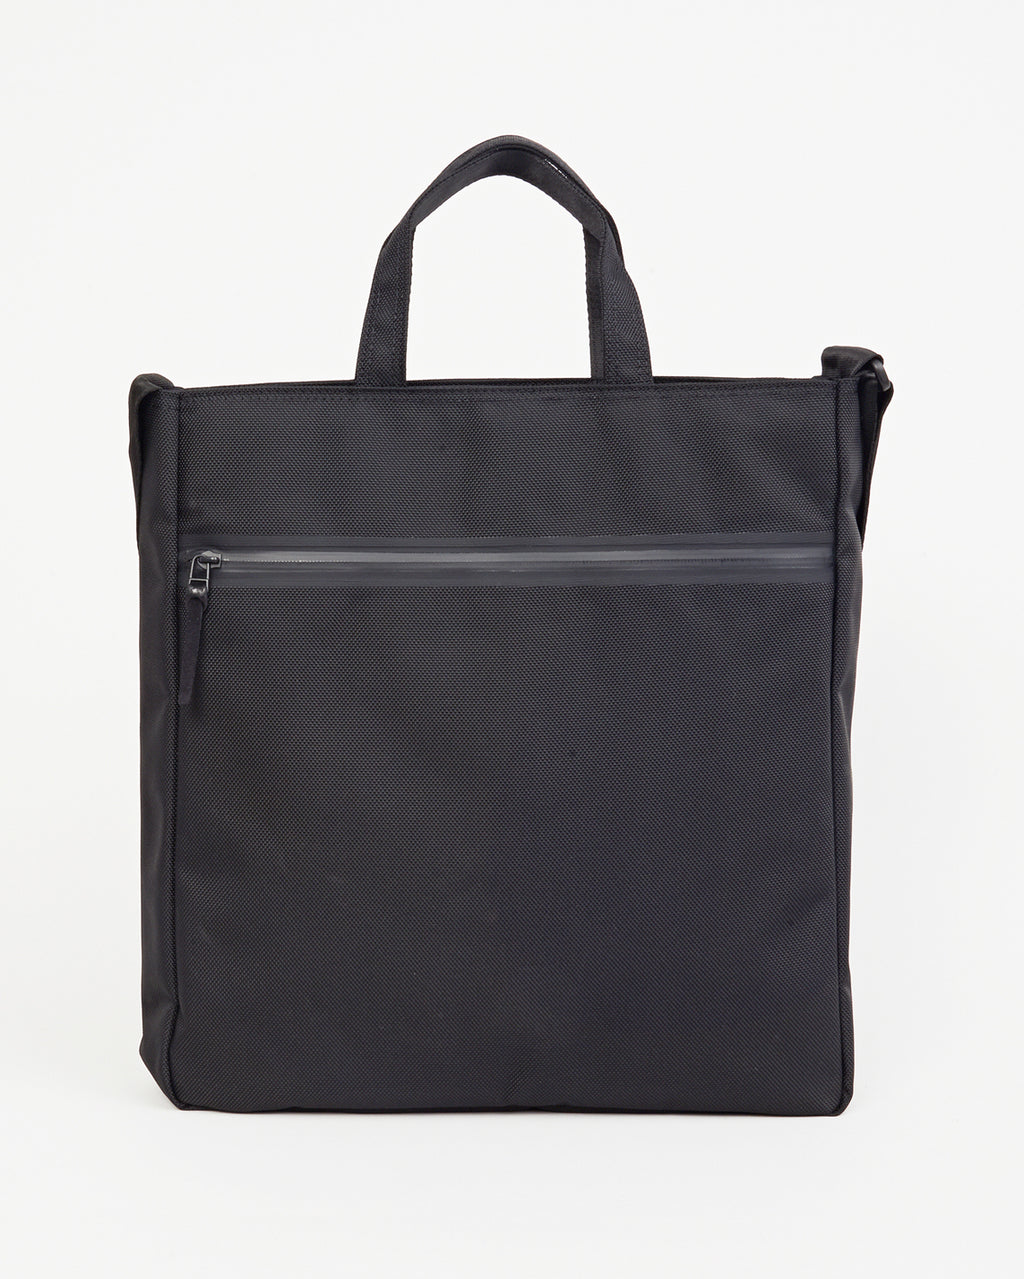 Square Tote Bag – Black